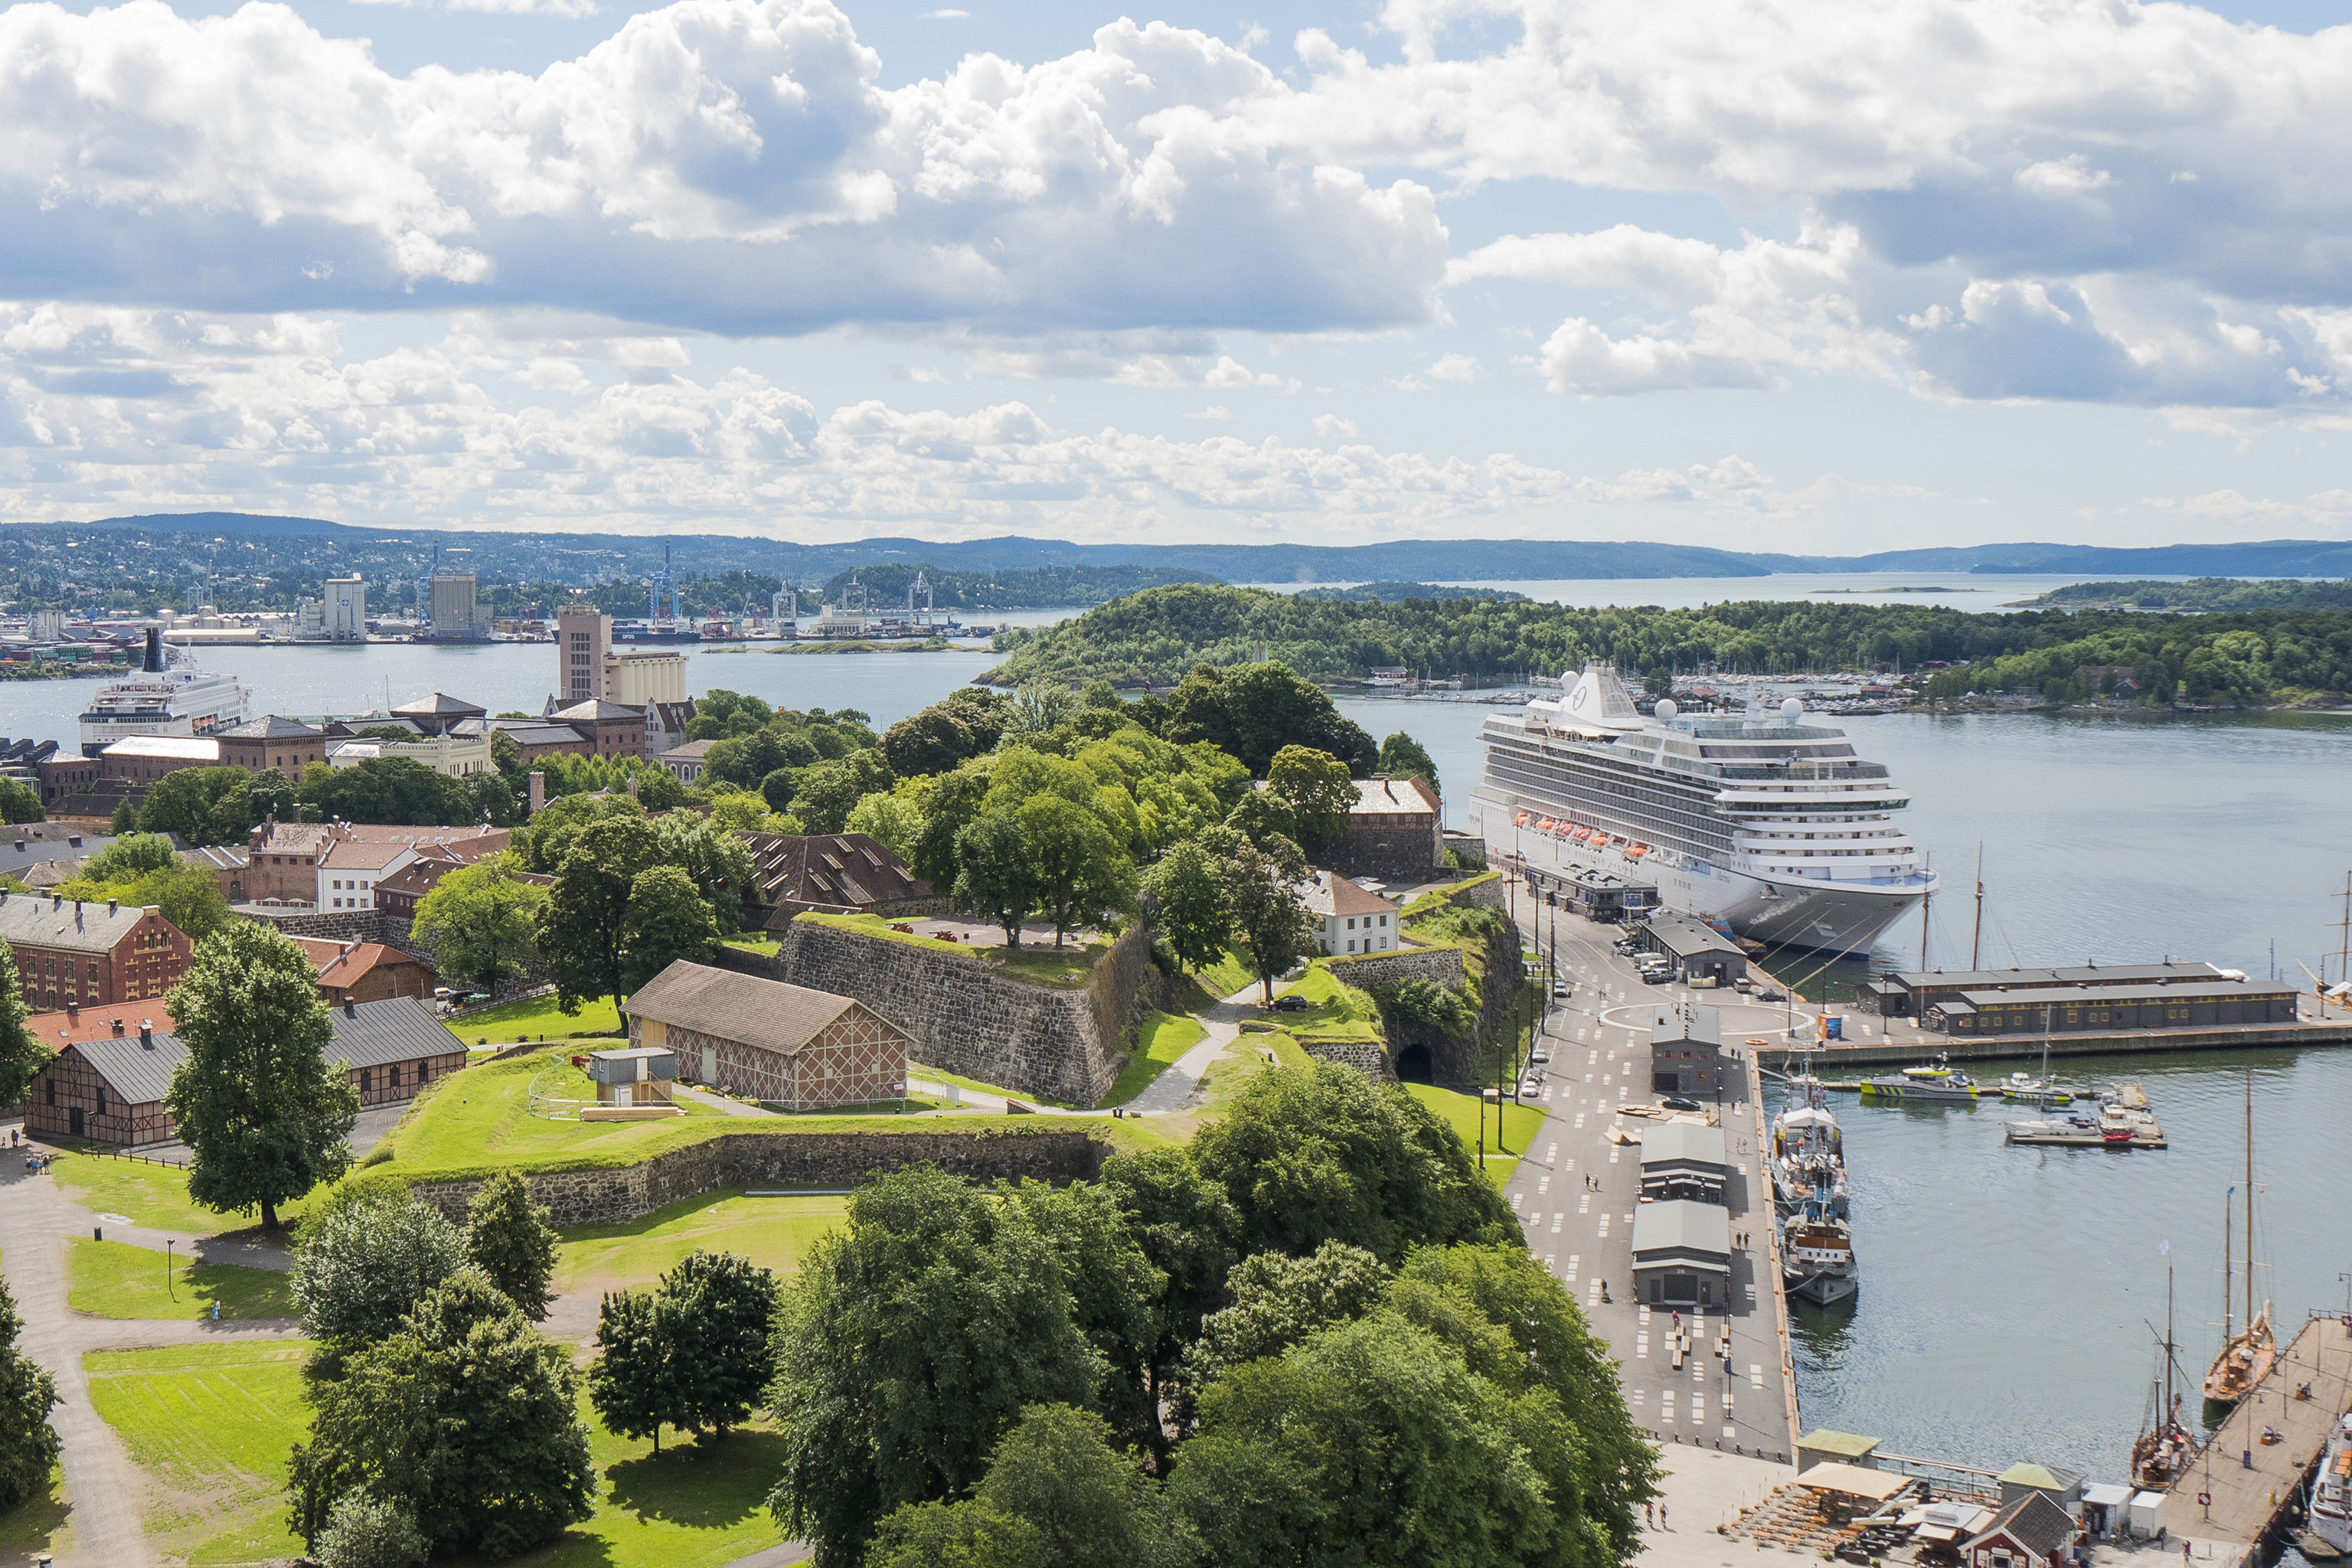 cruise, port, harbour, Oslo, Norway, halved, ships, turnaround, Per Erik Winther, manager, scandal, number, terminal, Royal Caribbean, build